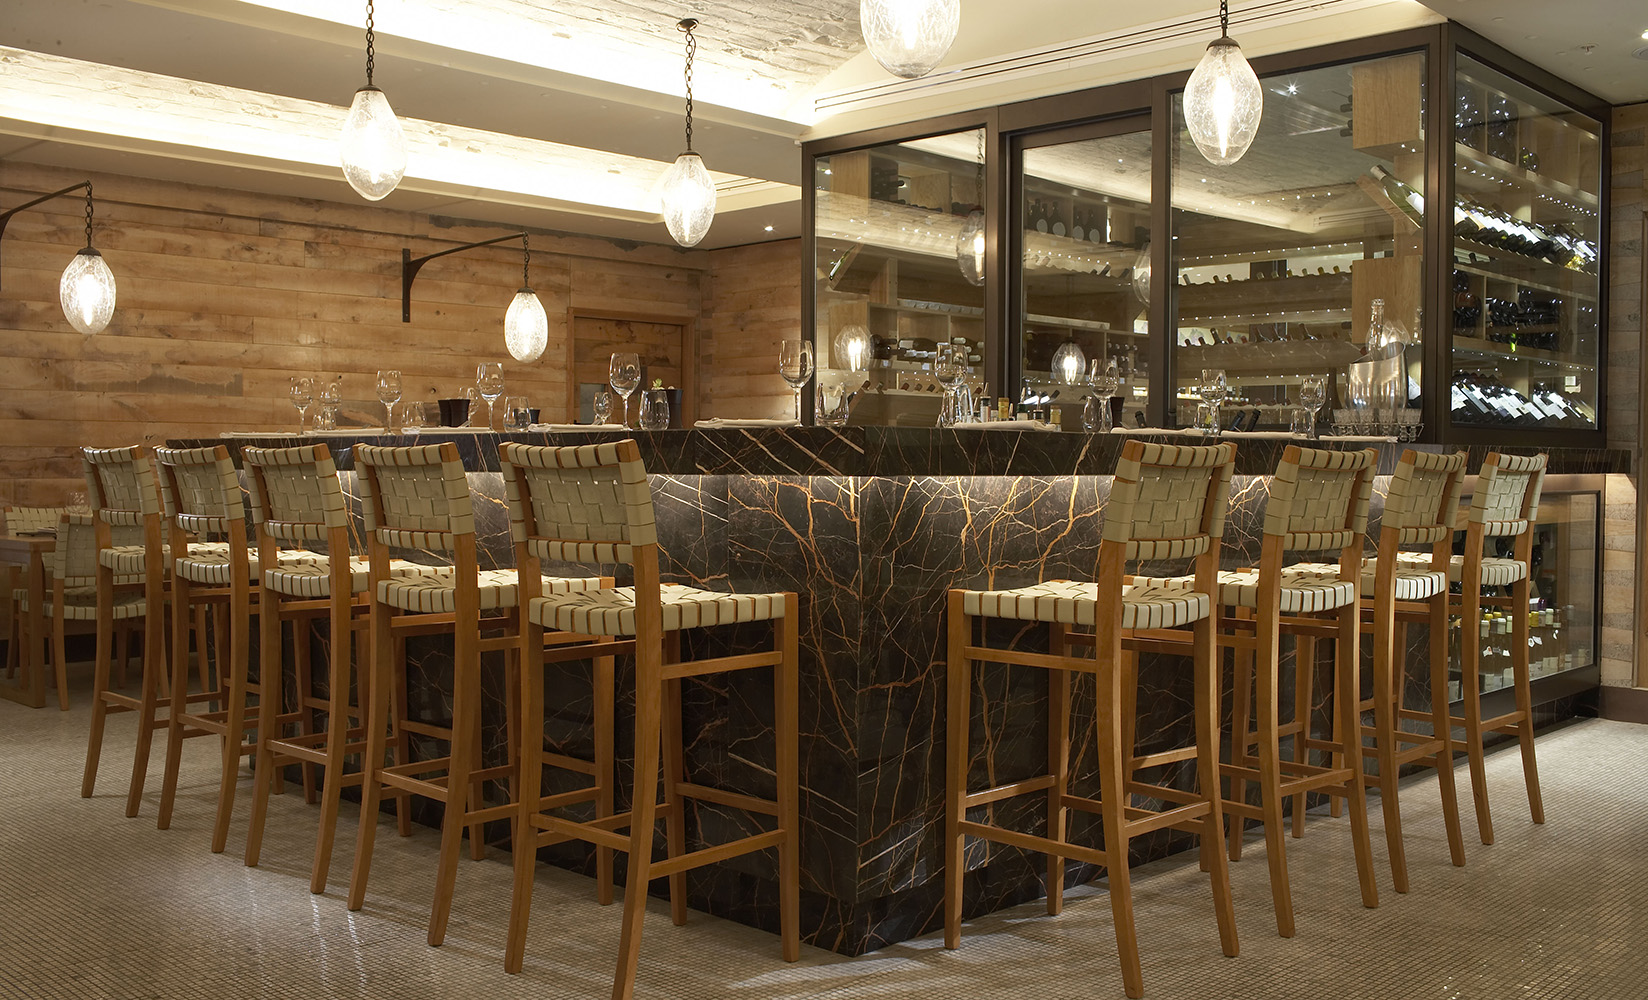 1707 Wine Bar Mayfair London